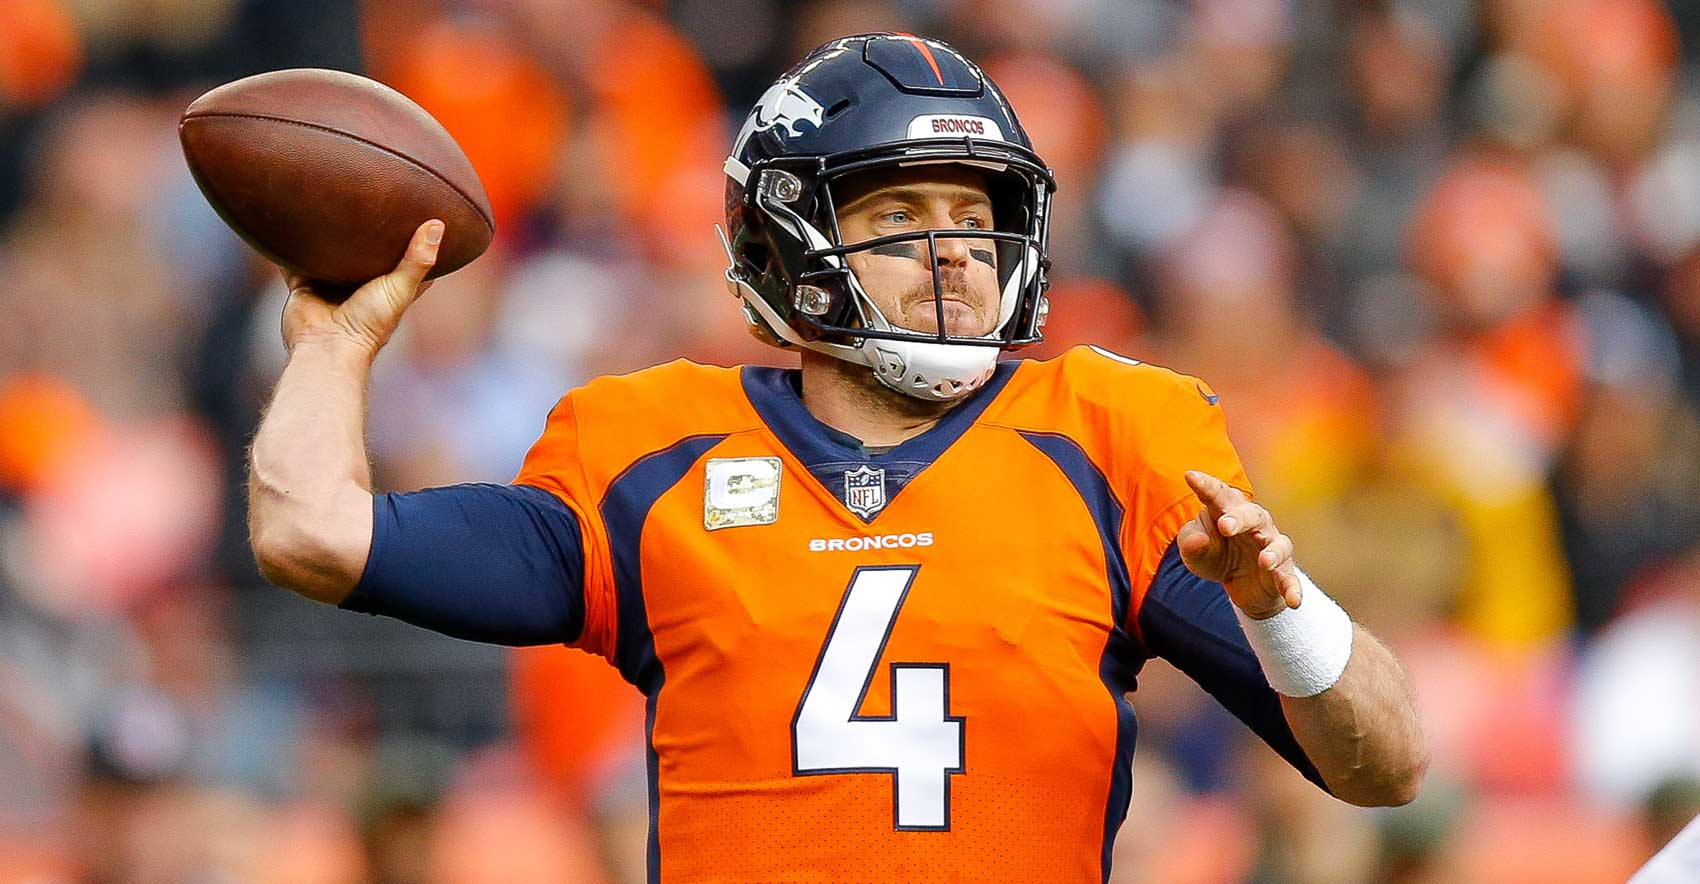 Fantasy Football: NFL Week 13 Weather Conditions